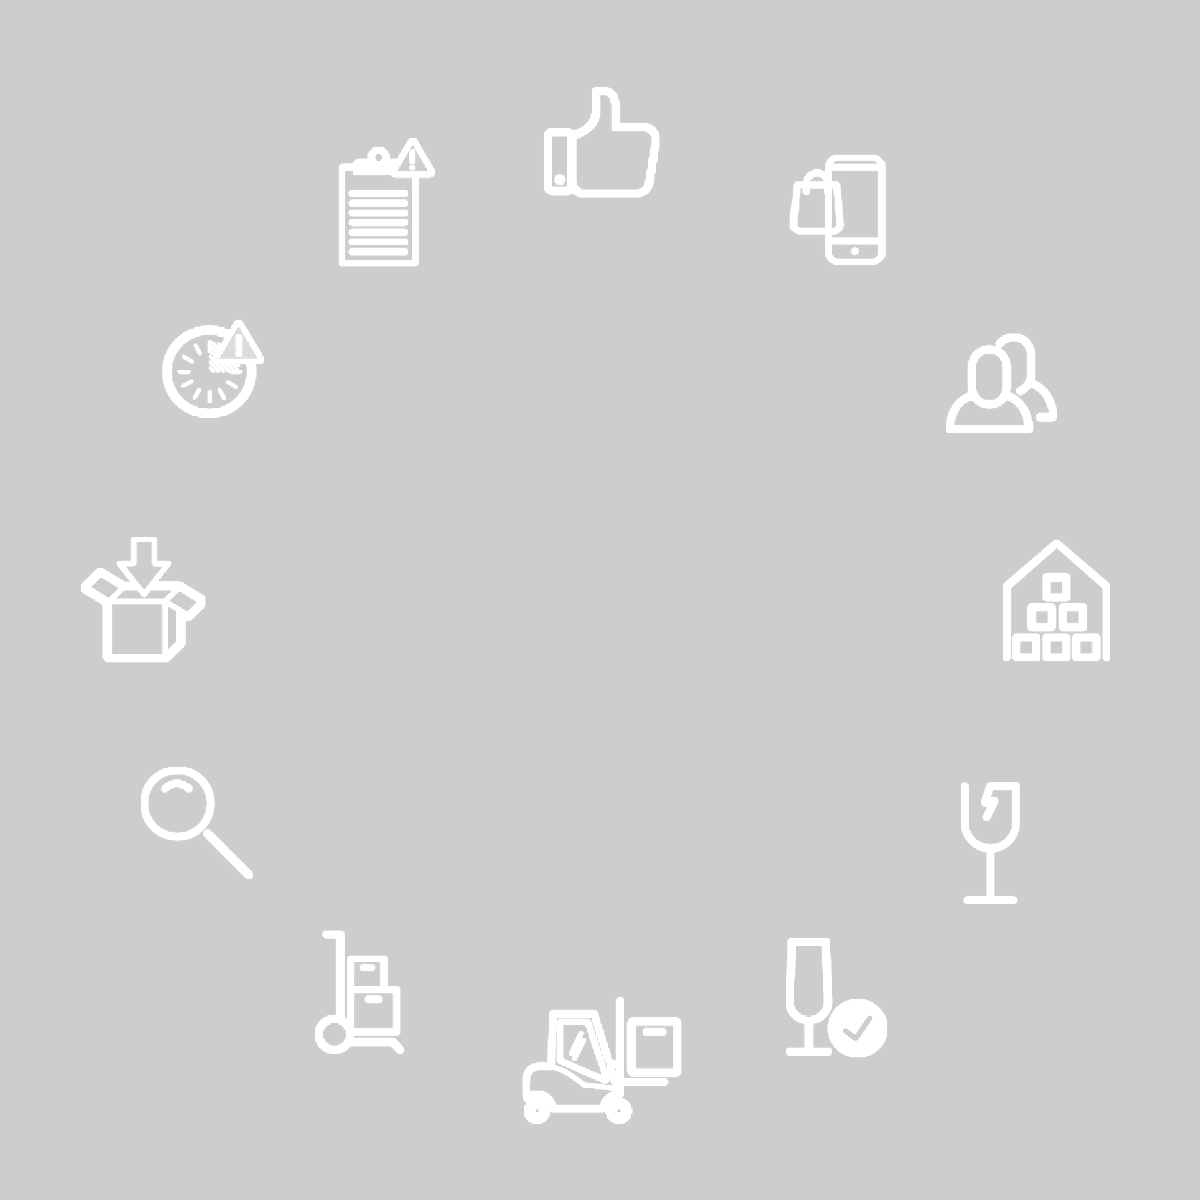 FDL Technology icon designs for website usage